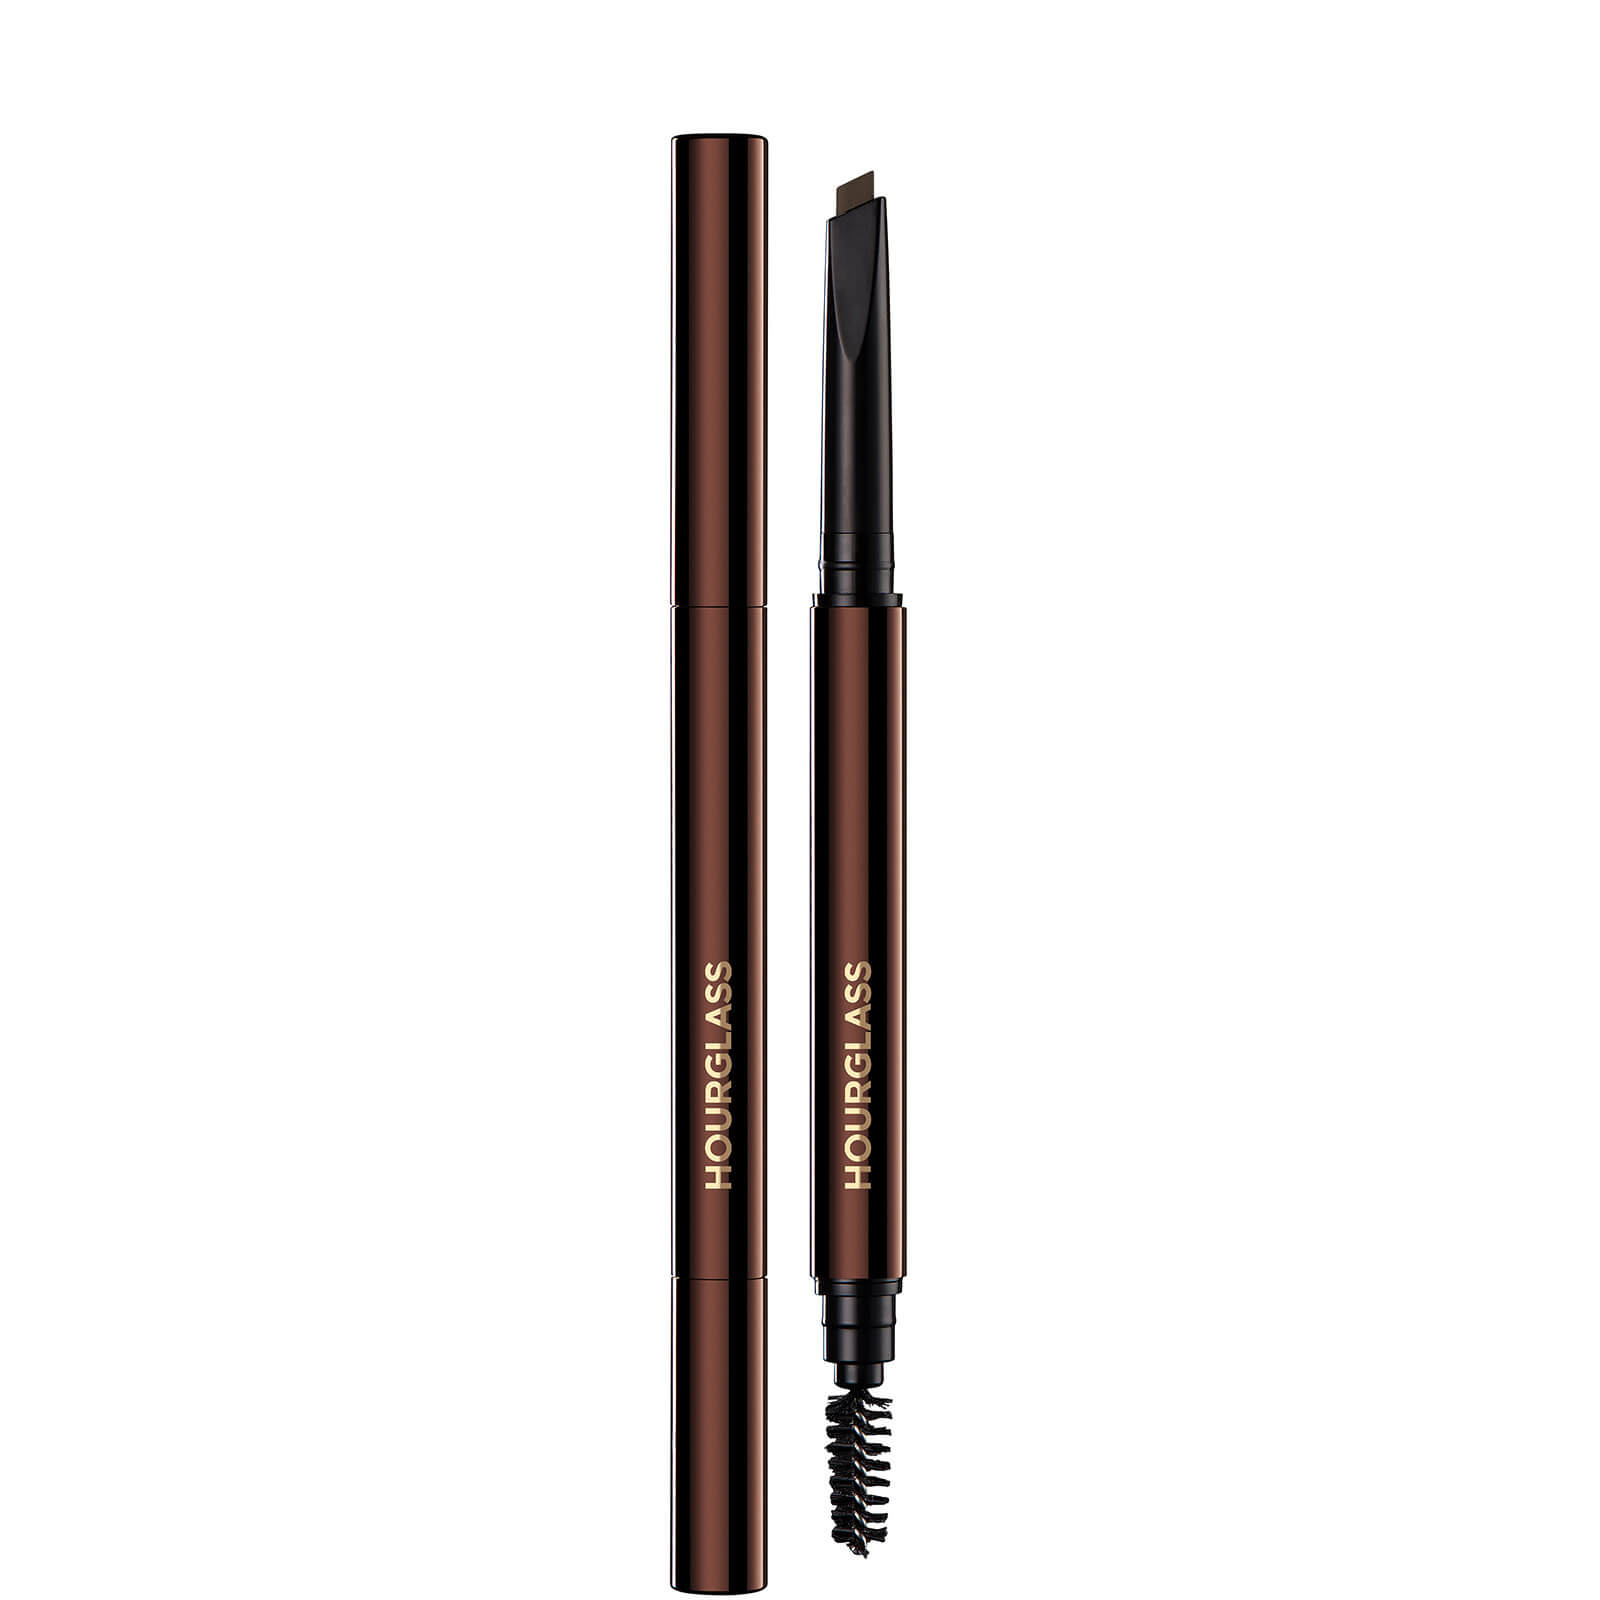 Hourglass Arch Brow Sculpting Pencil 0.4g - Ash